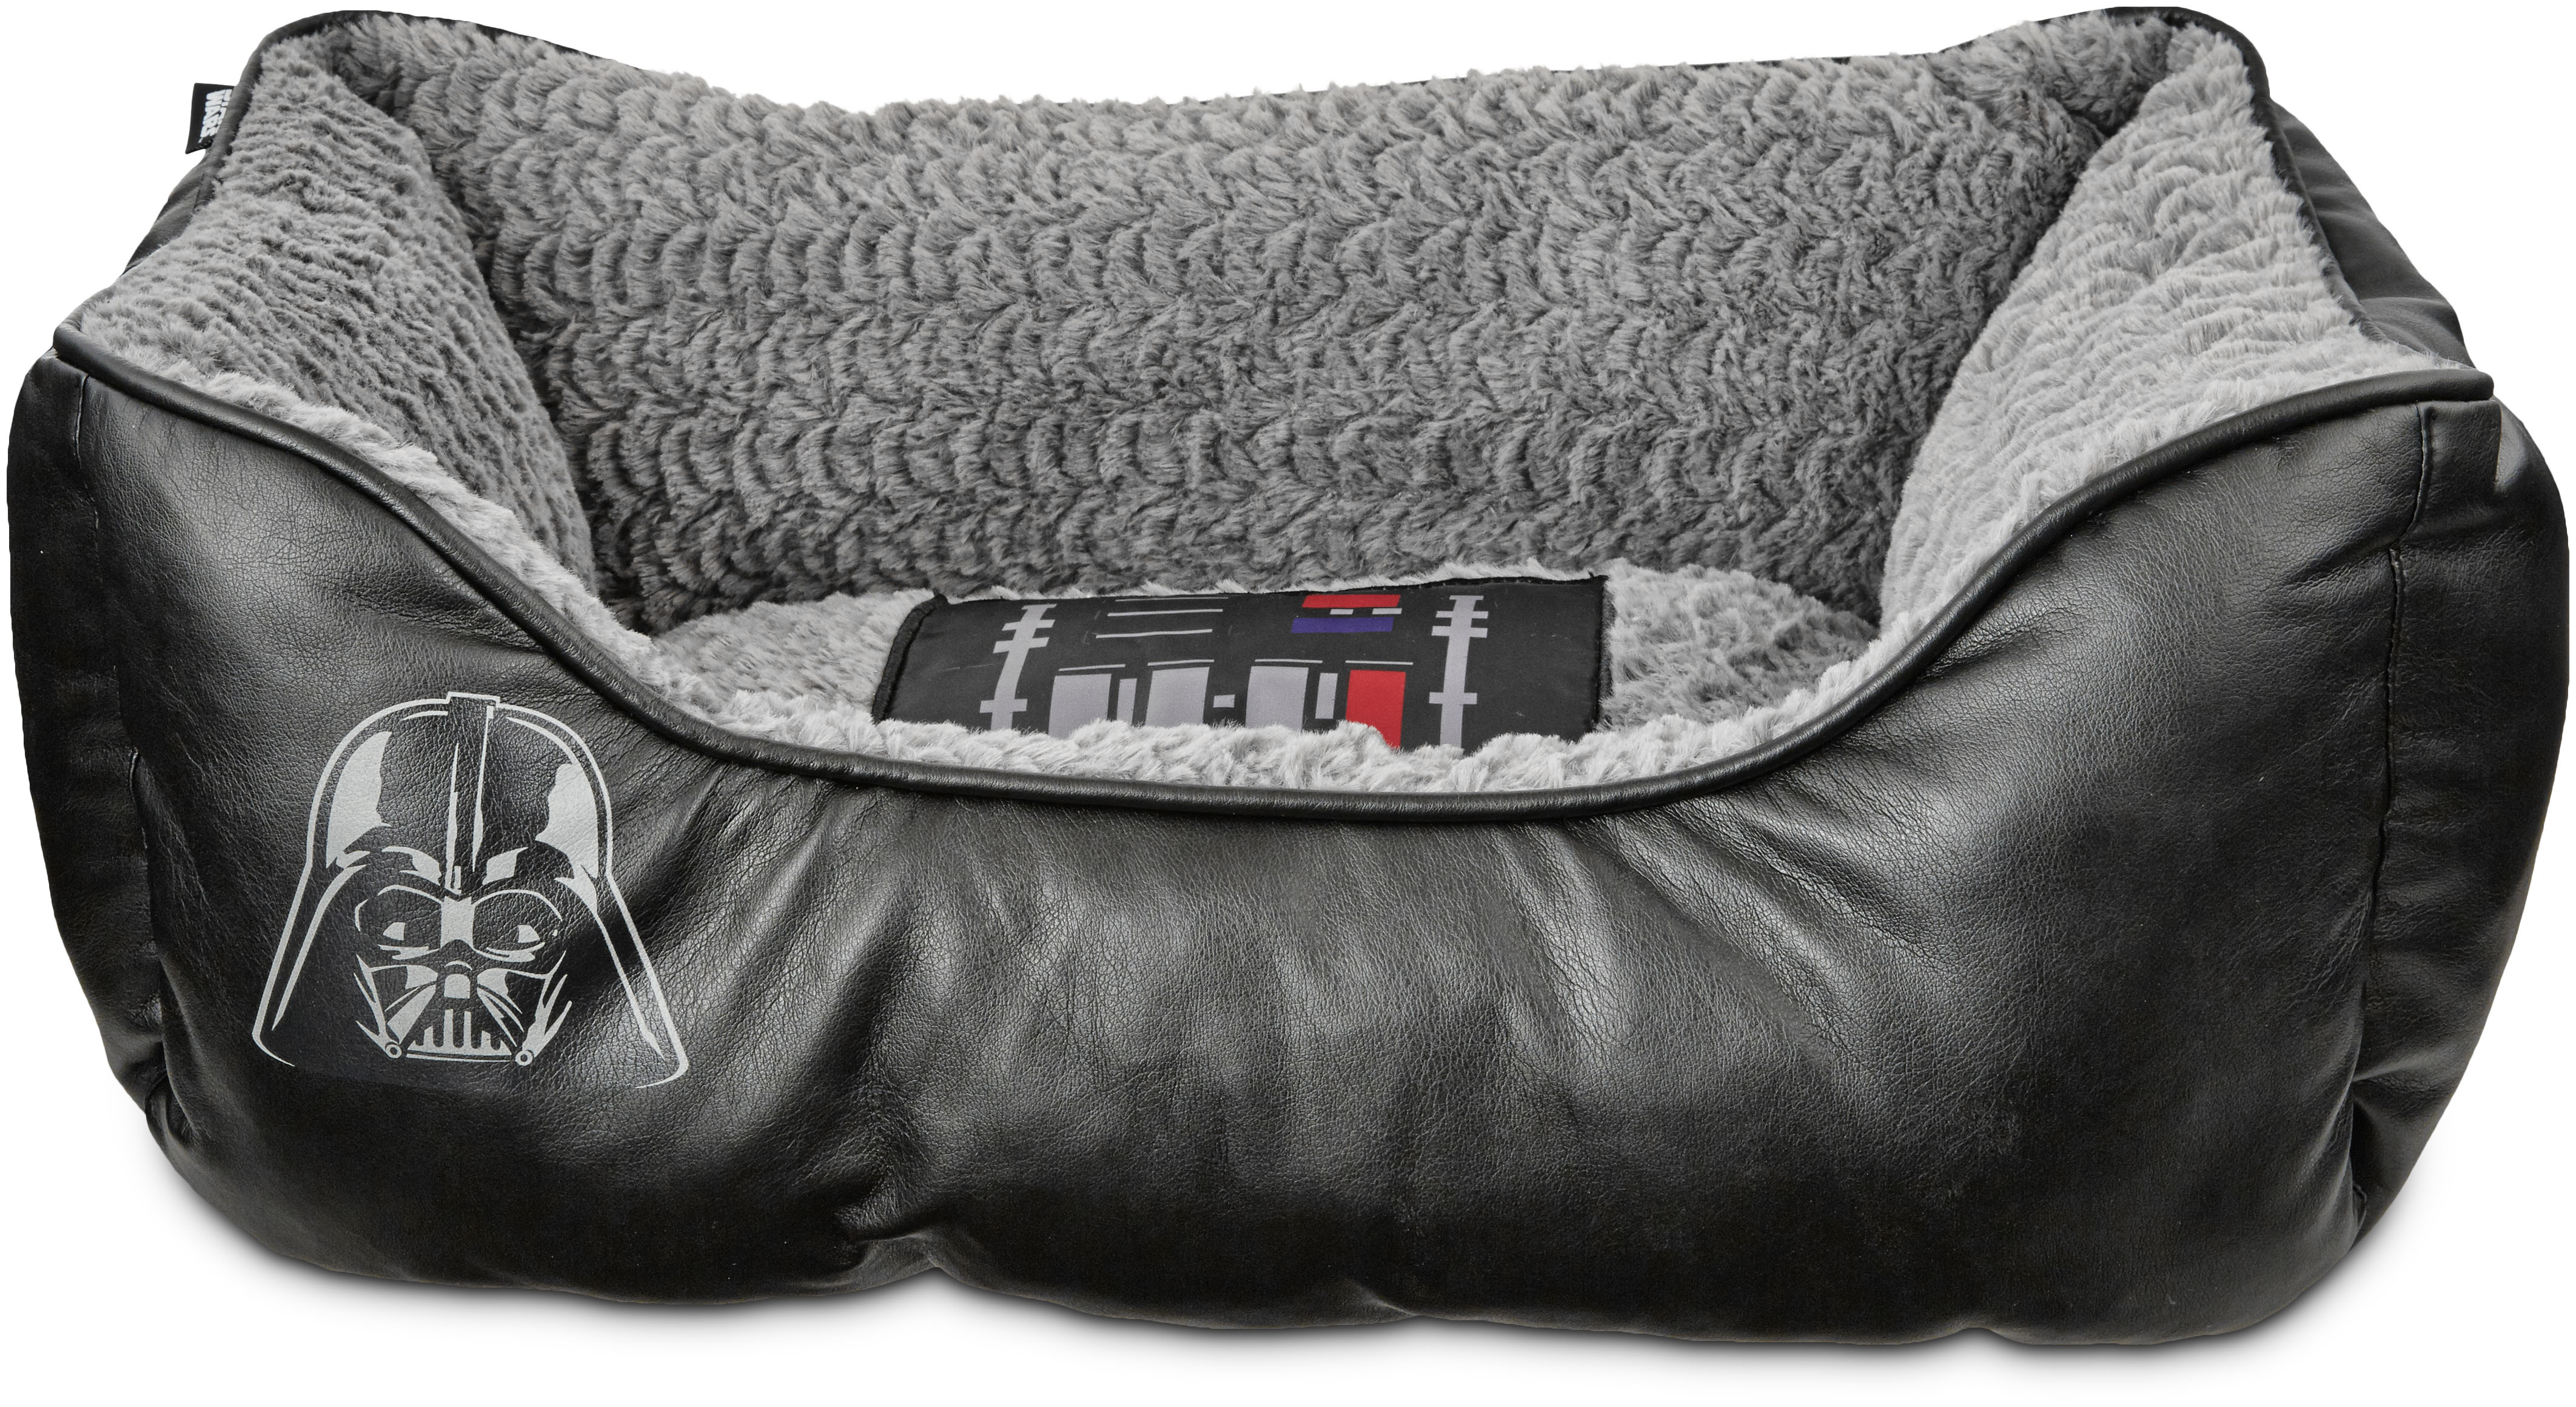 Star Wars Darth Vader Box Bed For Dogs 29 99 Nerd Reactor